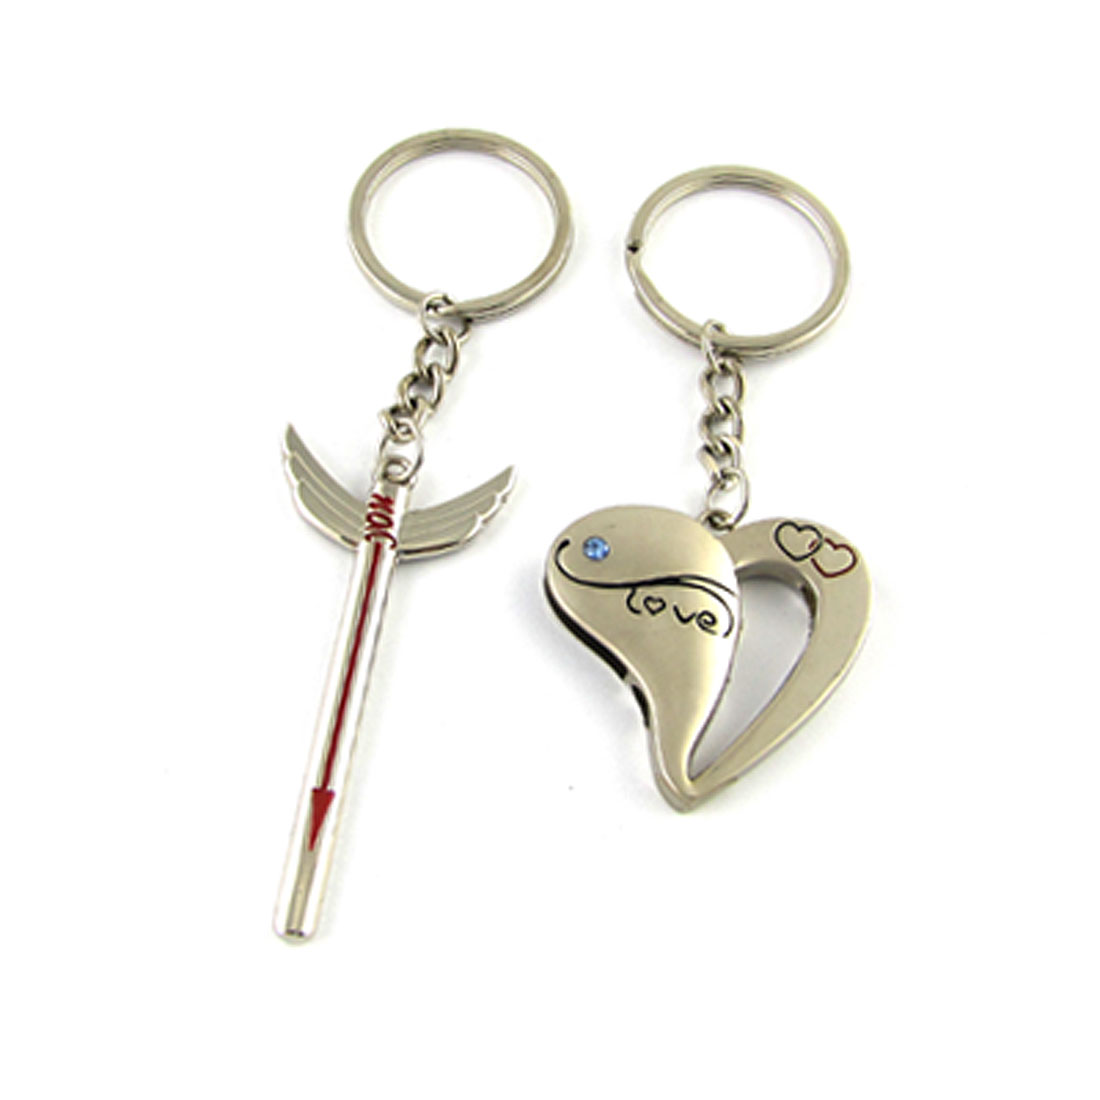 Silver Tone Heart Arrow Metal Key Chain Ring for lovers 2 Pcs